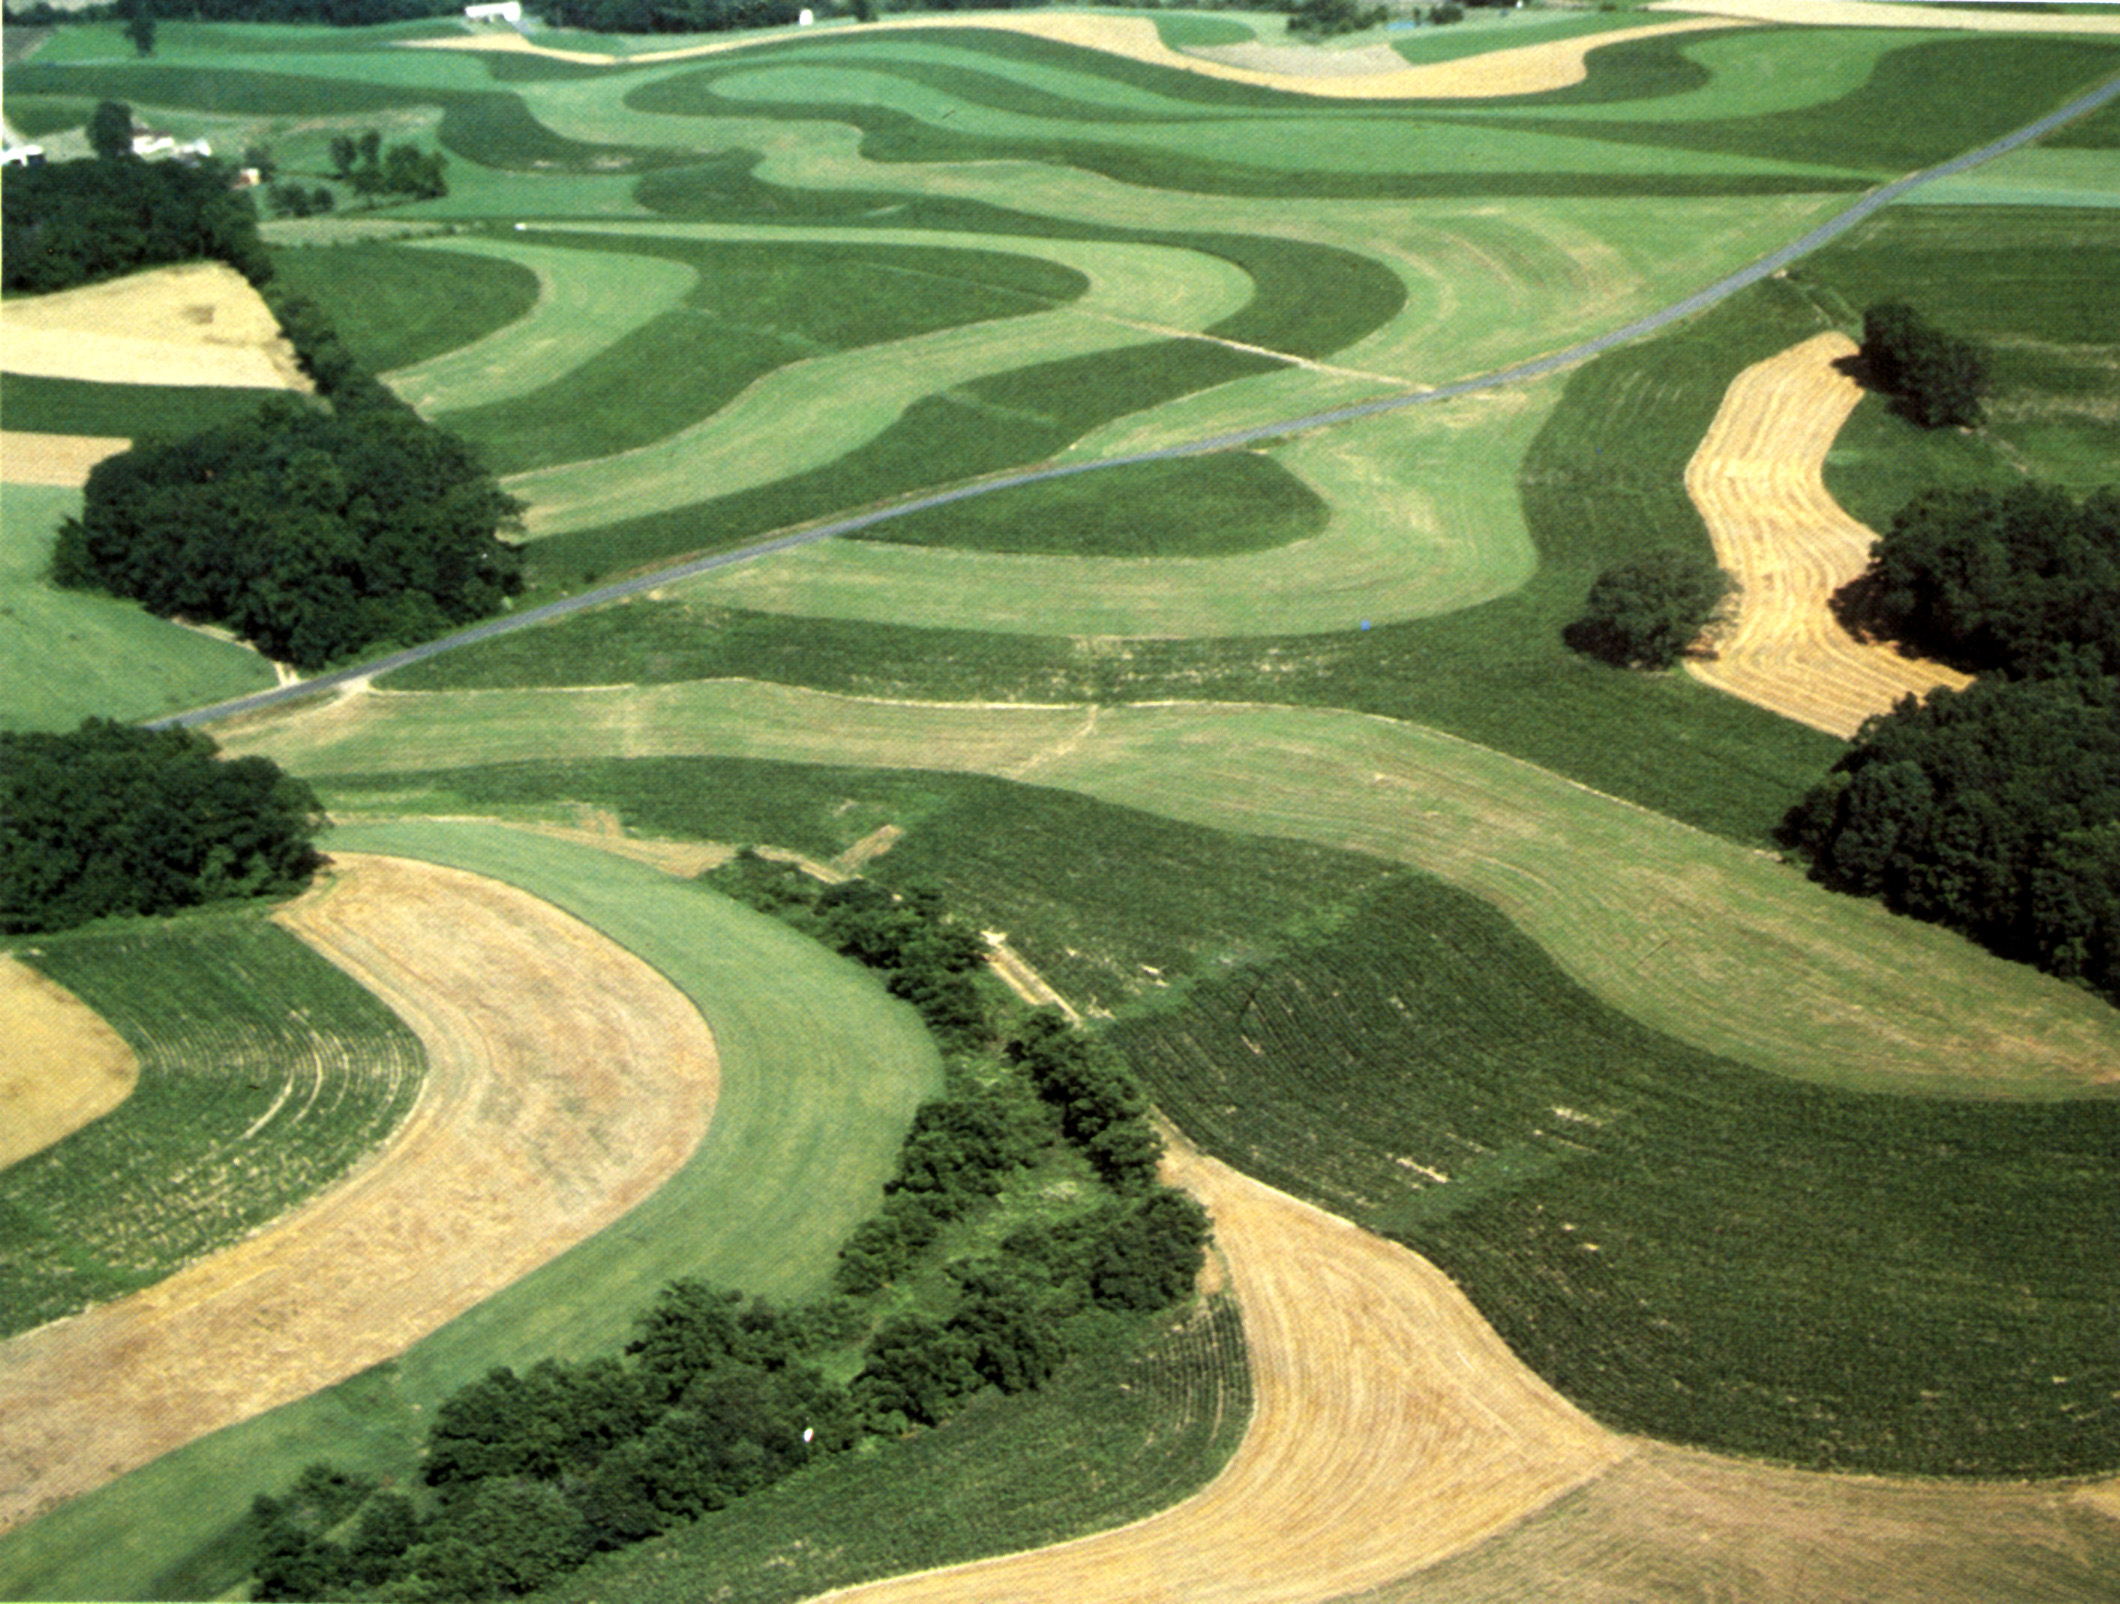 Definition: Contour Plowing is the farming practice of pl ...